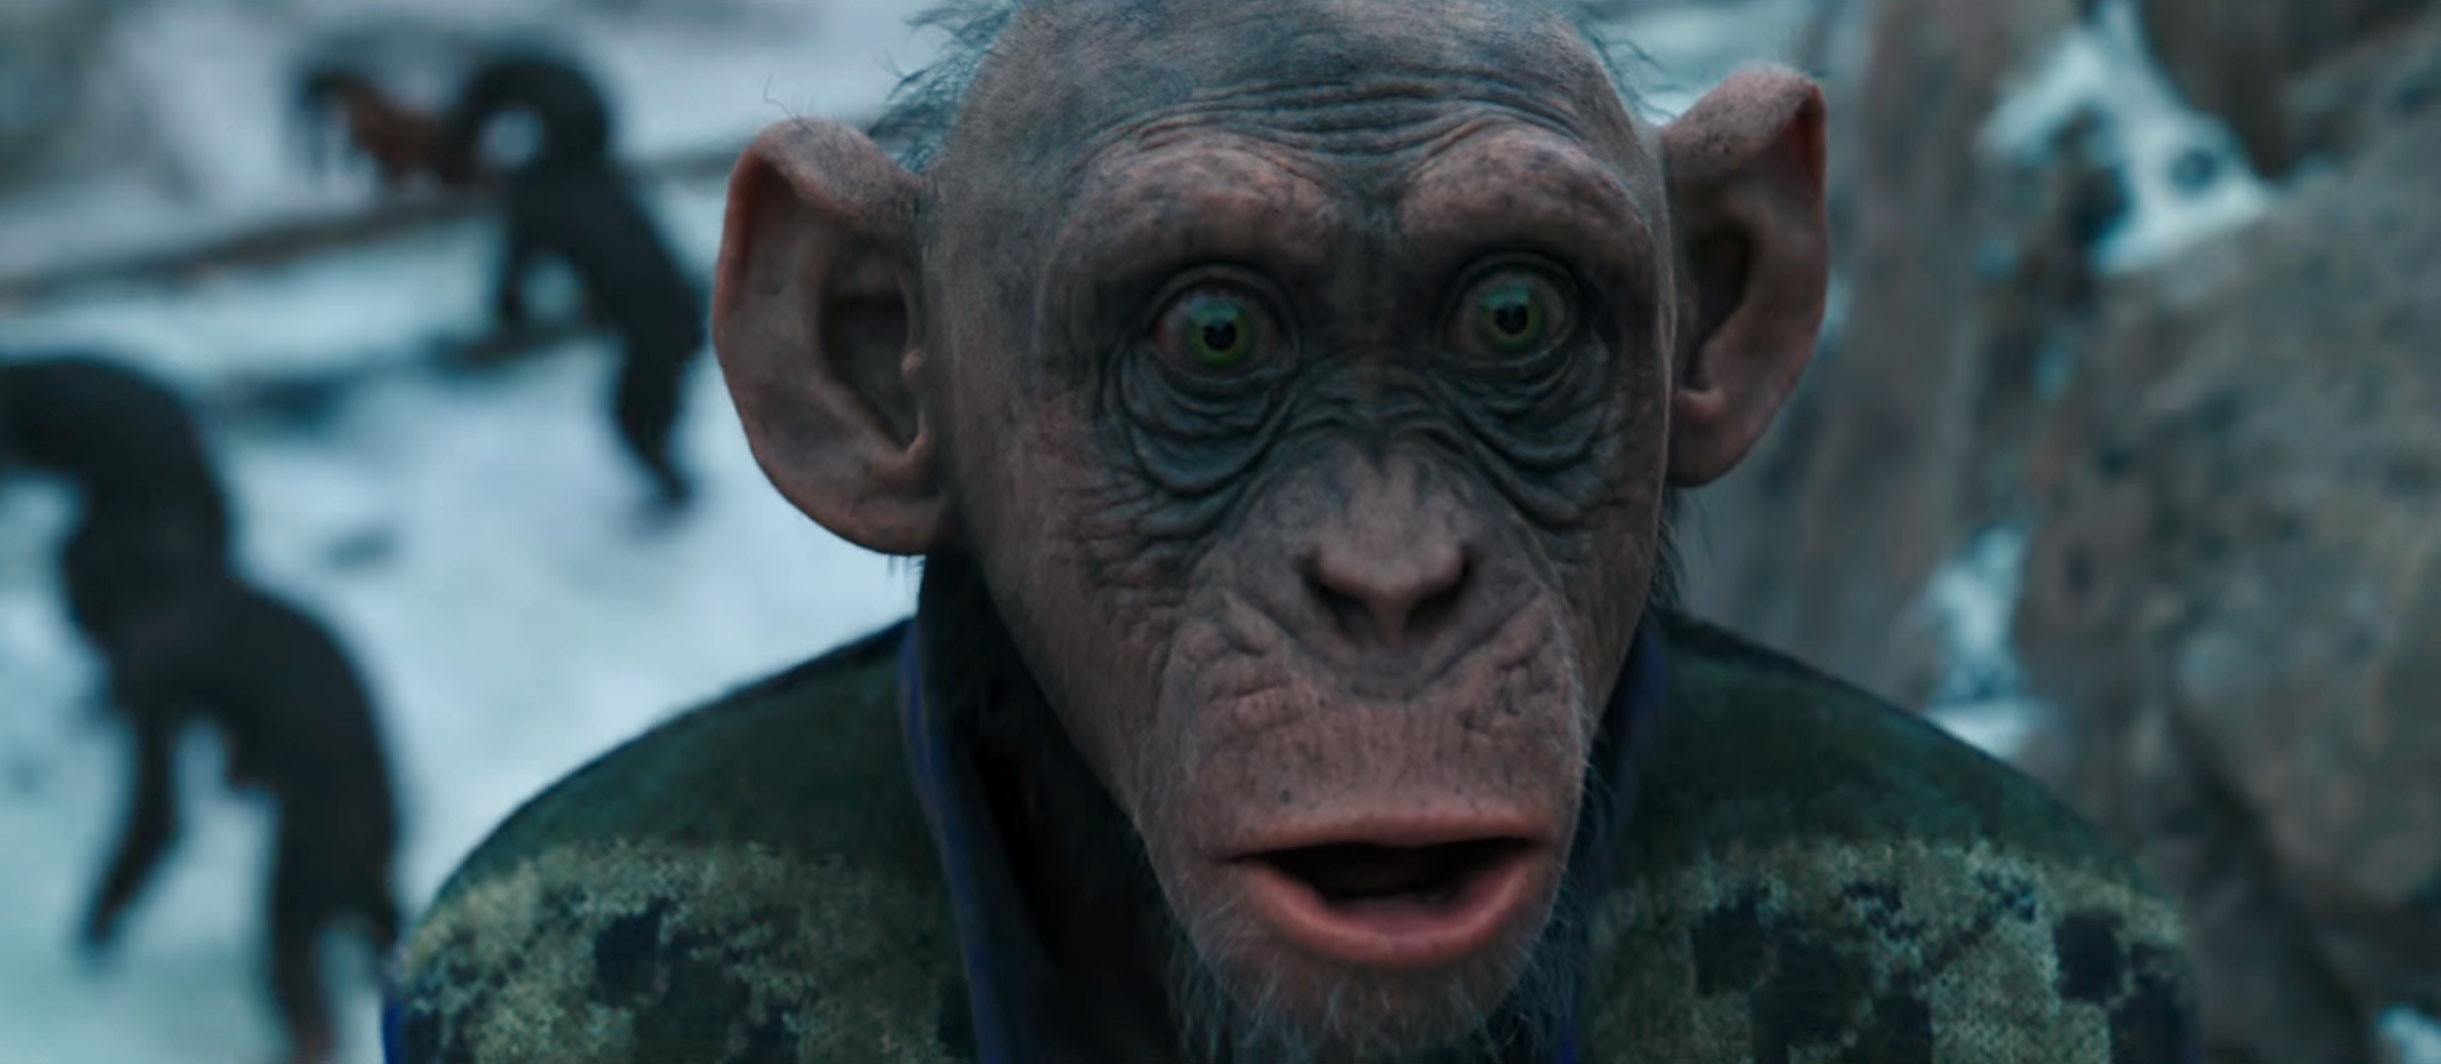 That Ape Isn't Wearing DeRay's Vest in 'Planet of the Apes'